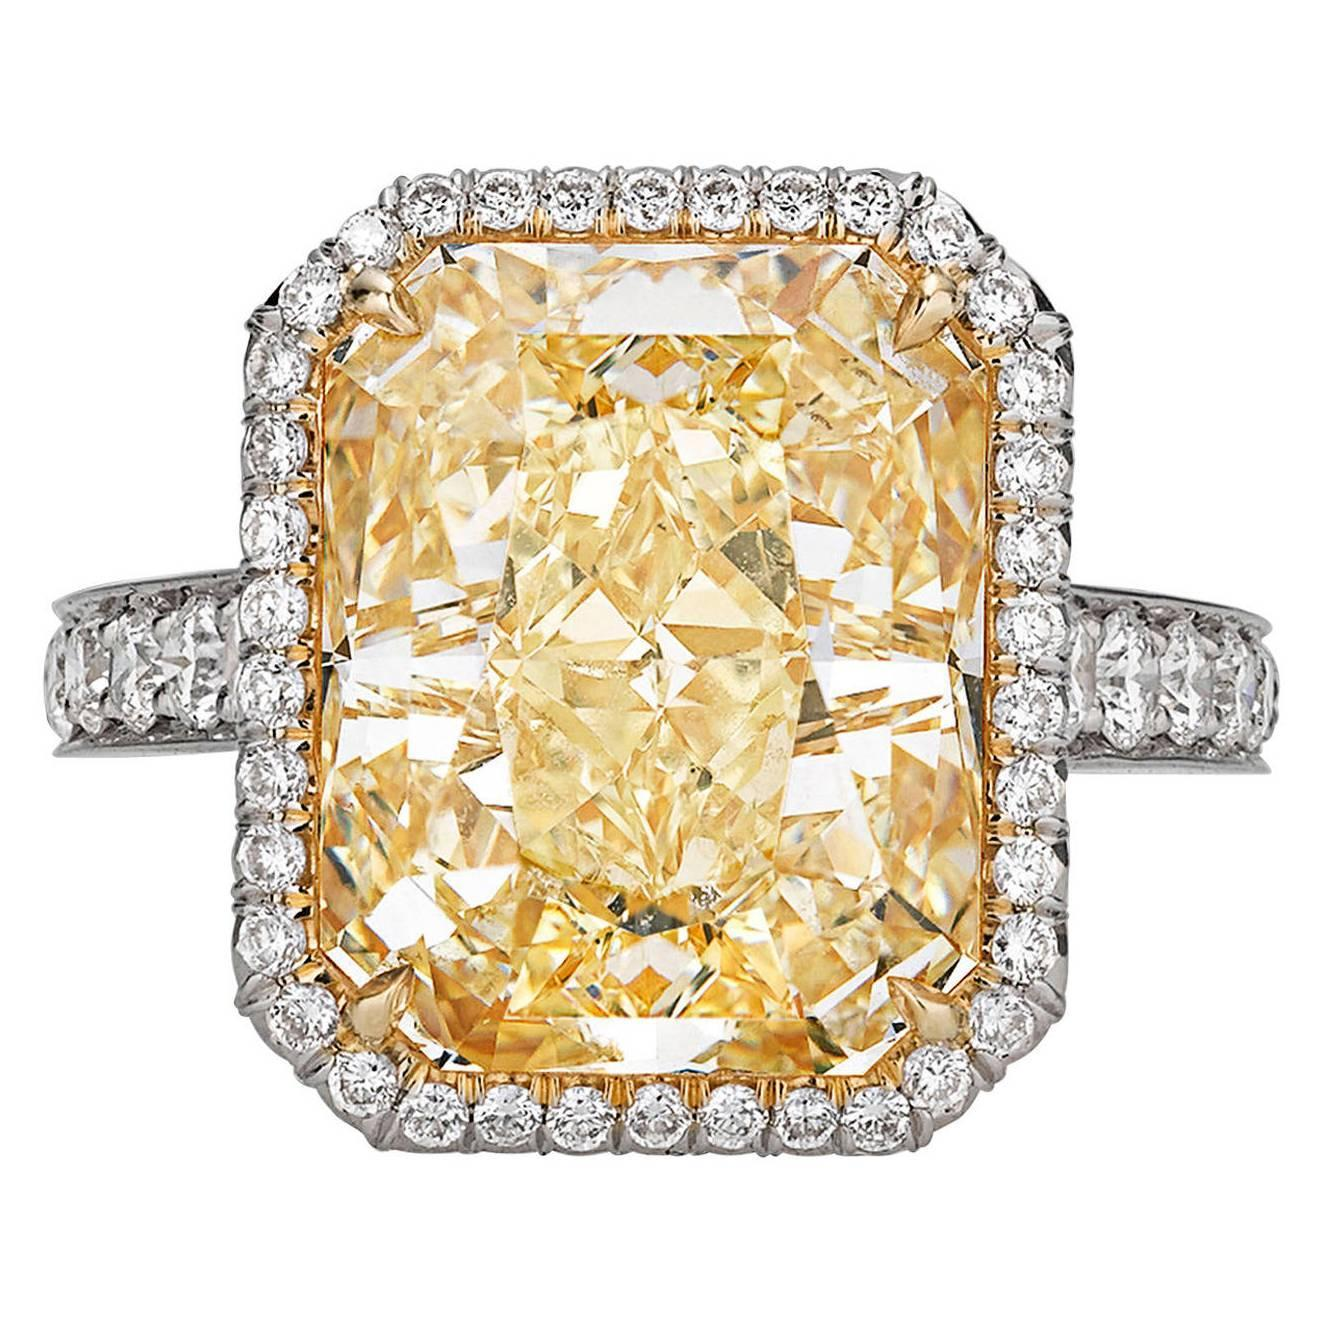 Fancy Yellow Diamond Ring 10 21 Carats For Sale at 1stdibs